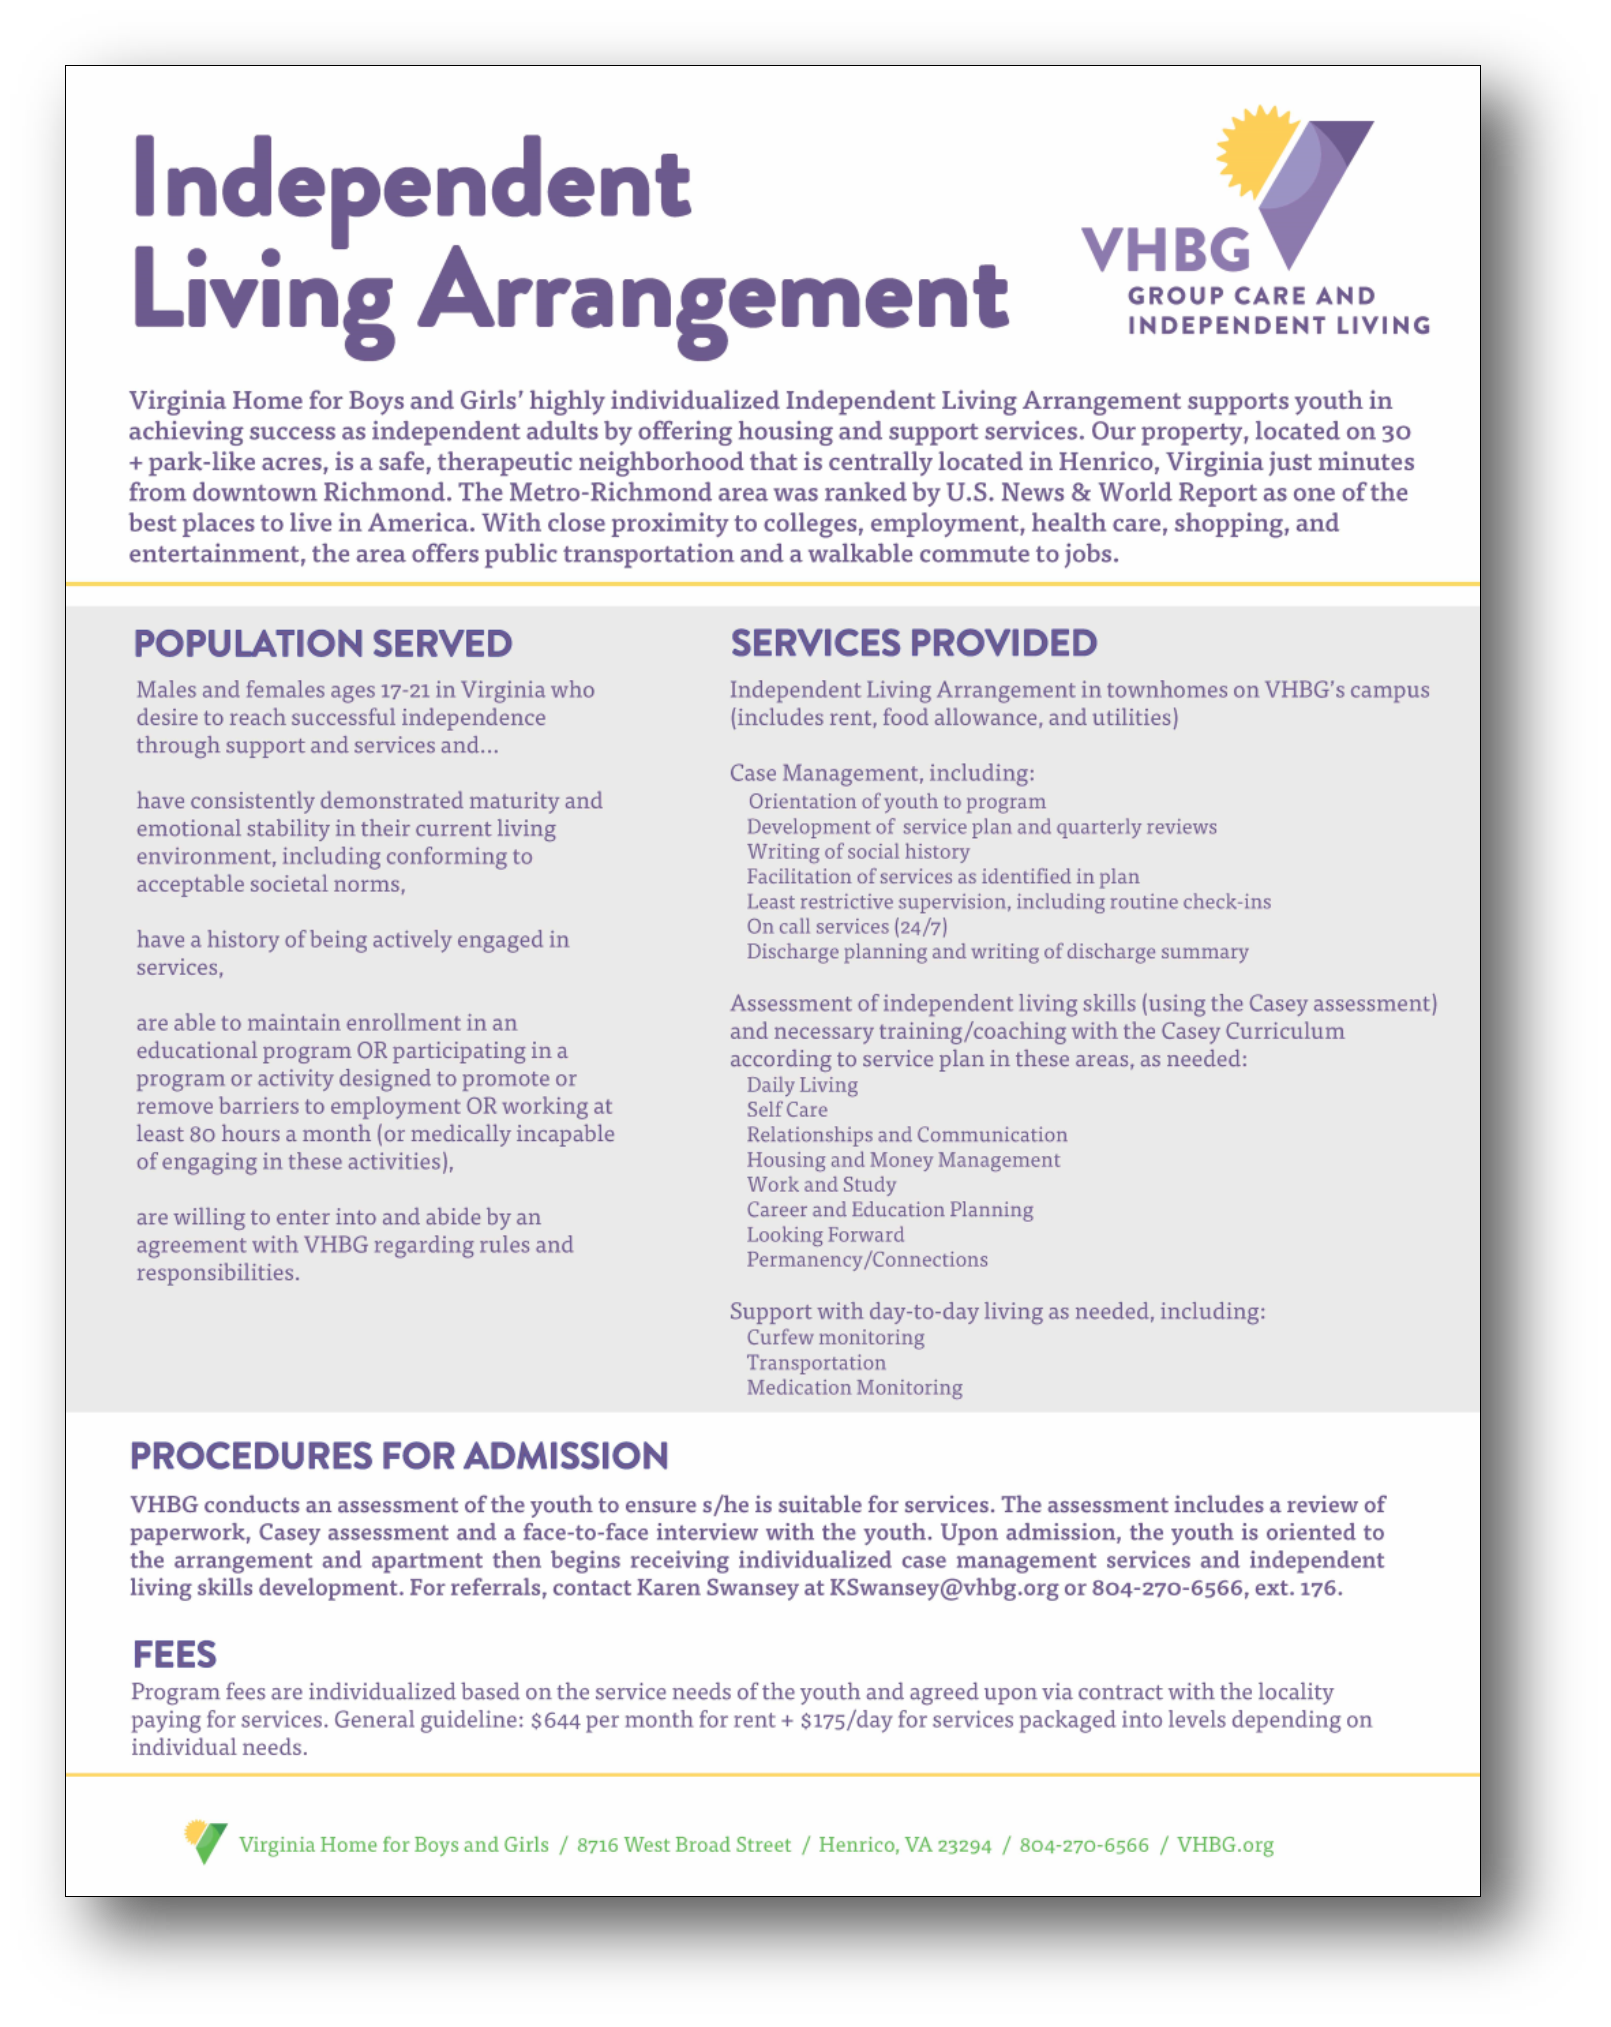 Independent Living Arrangement